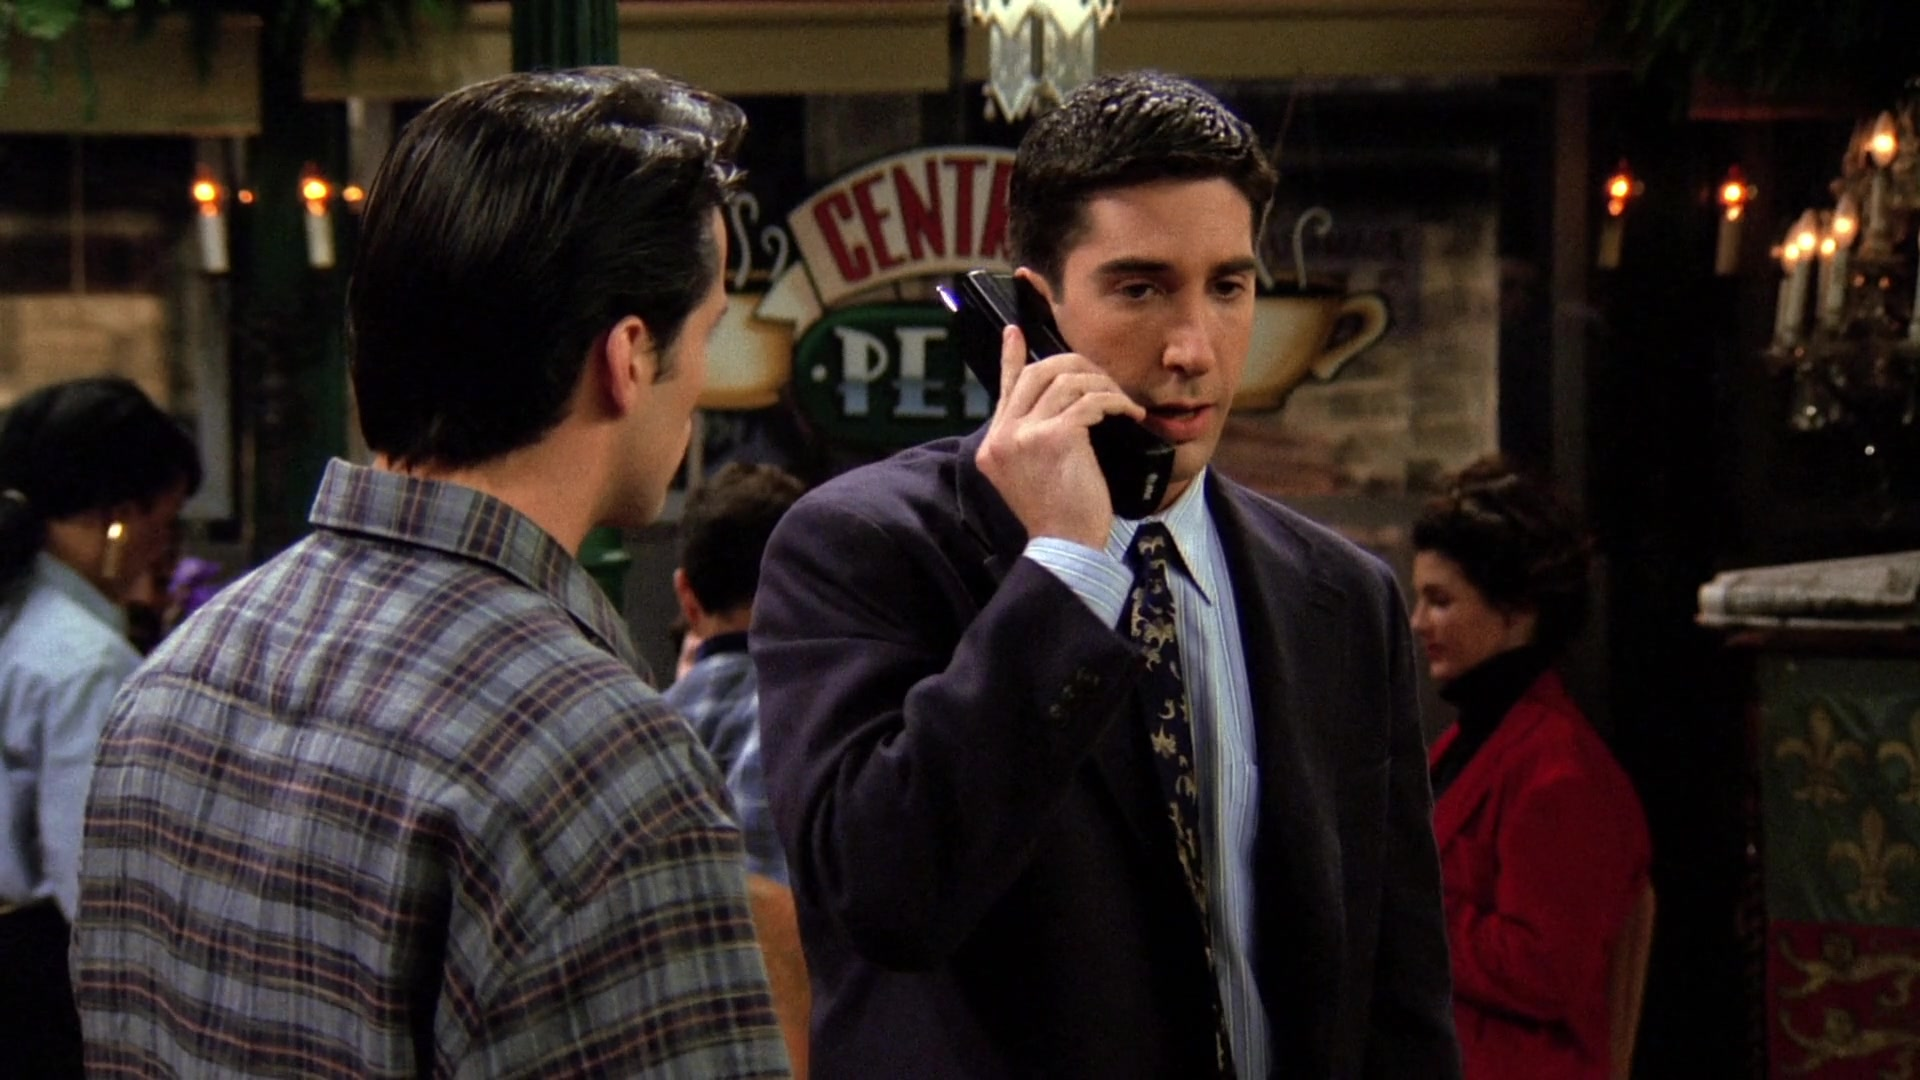 AT&T Telephone Held by David Schwimmer (Ross Geller) in